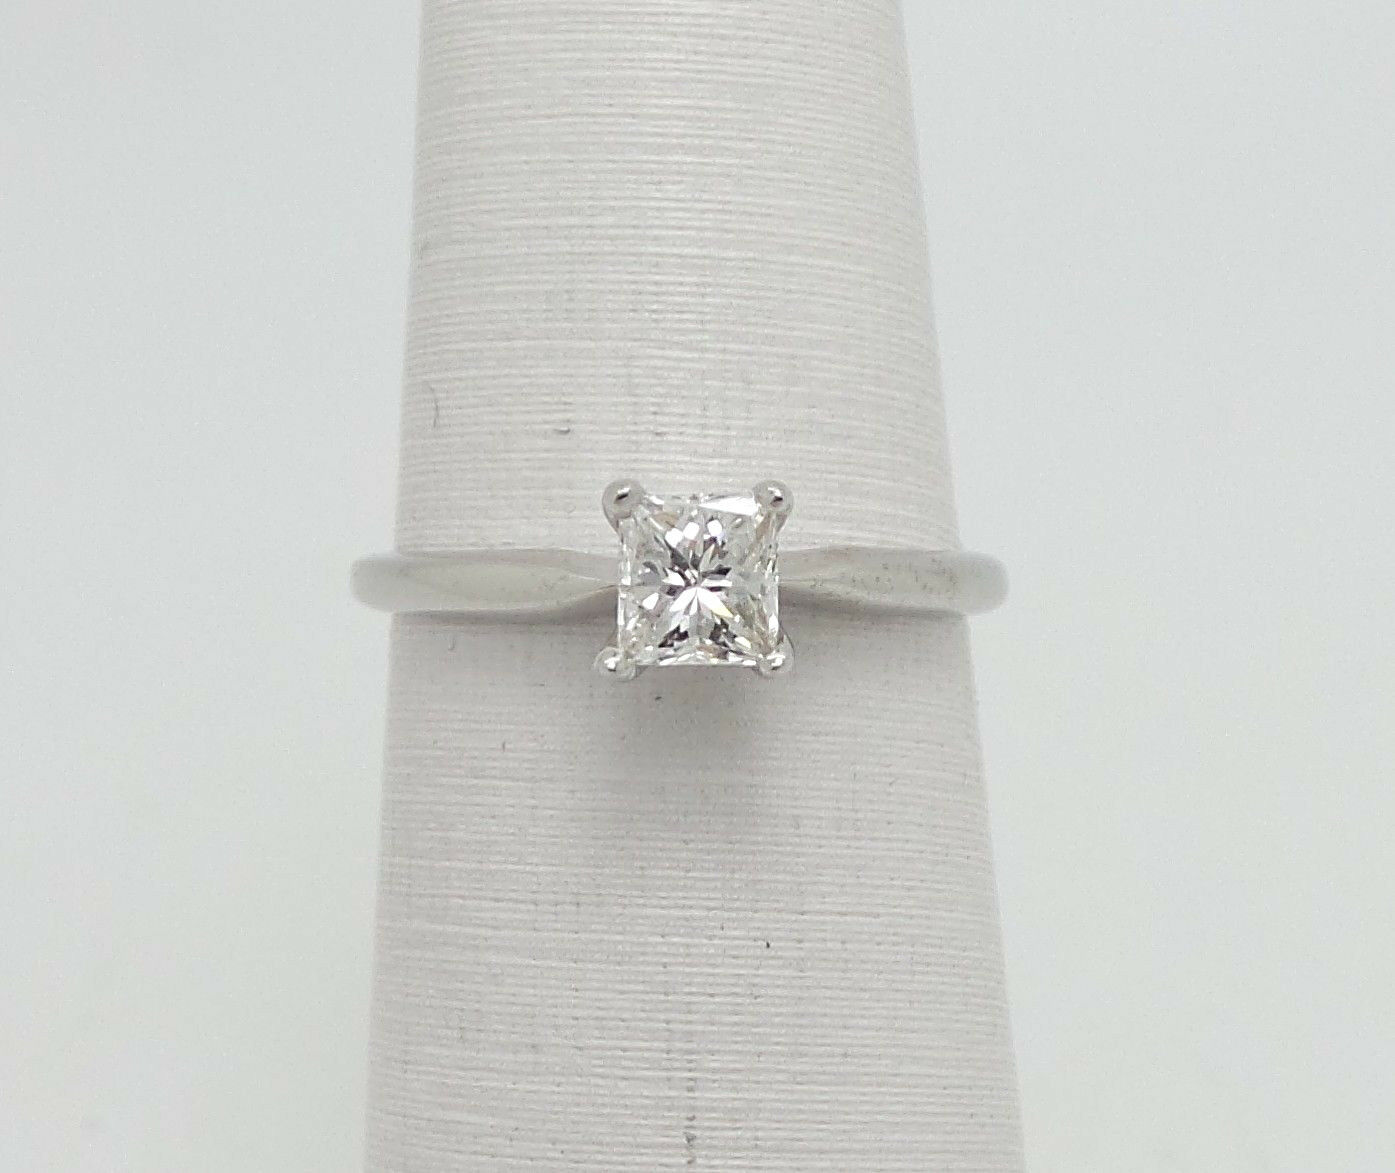 Zales 1 2CT Princess Diamond Solitaire Engagement Wedding Ring 14K White gold